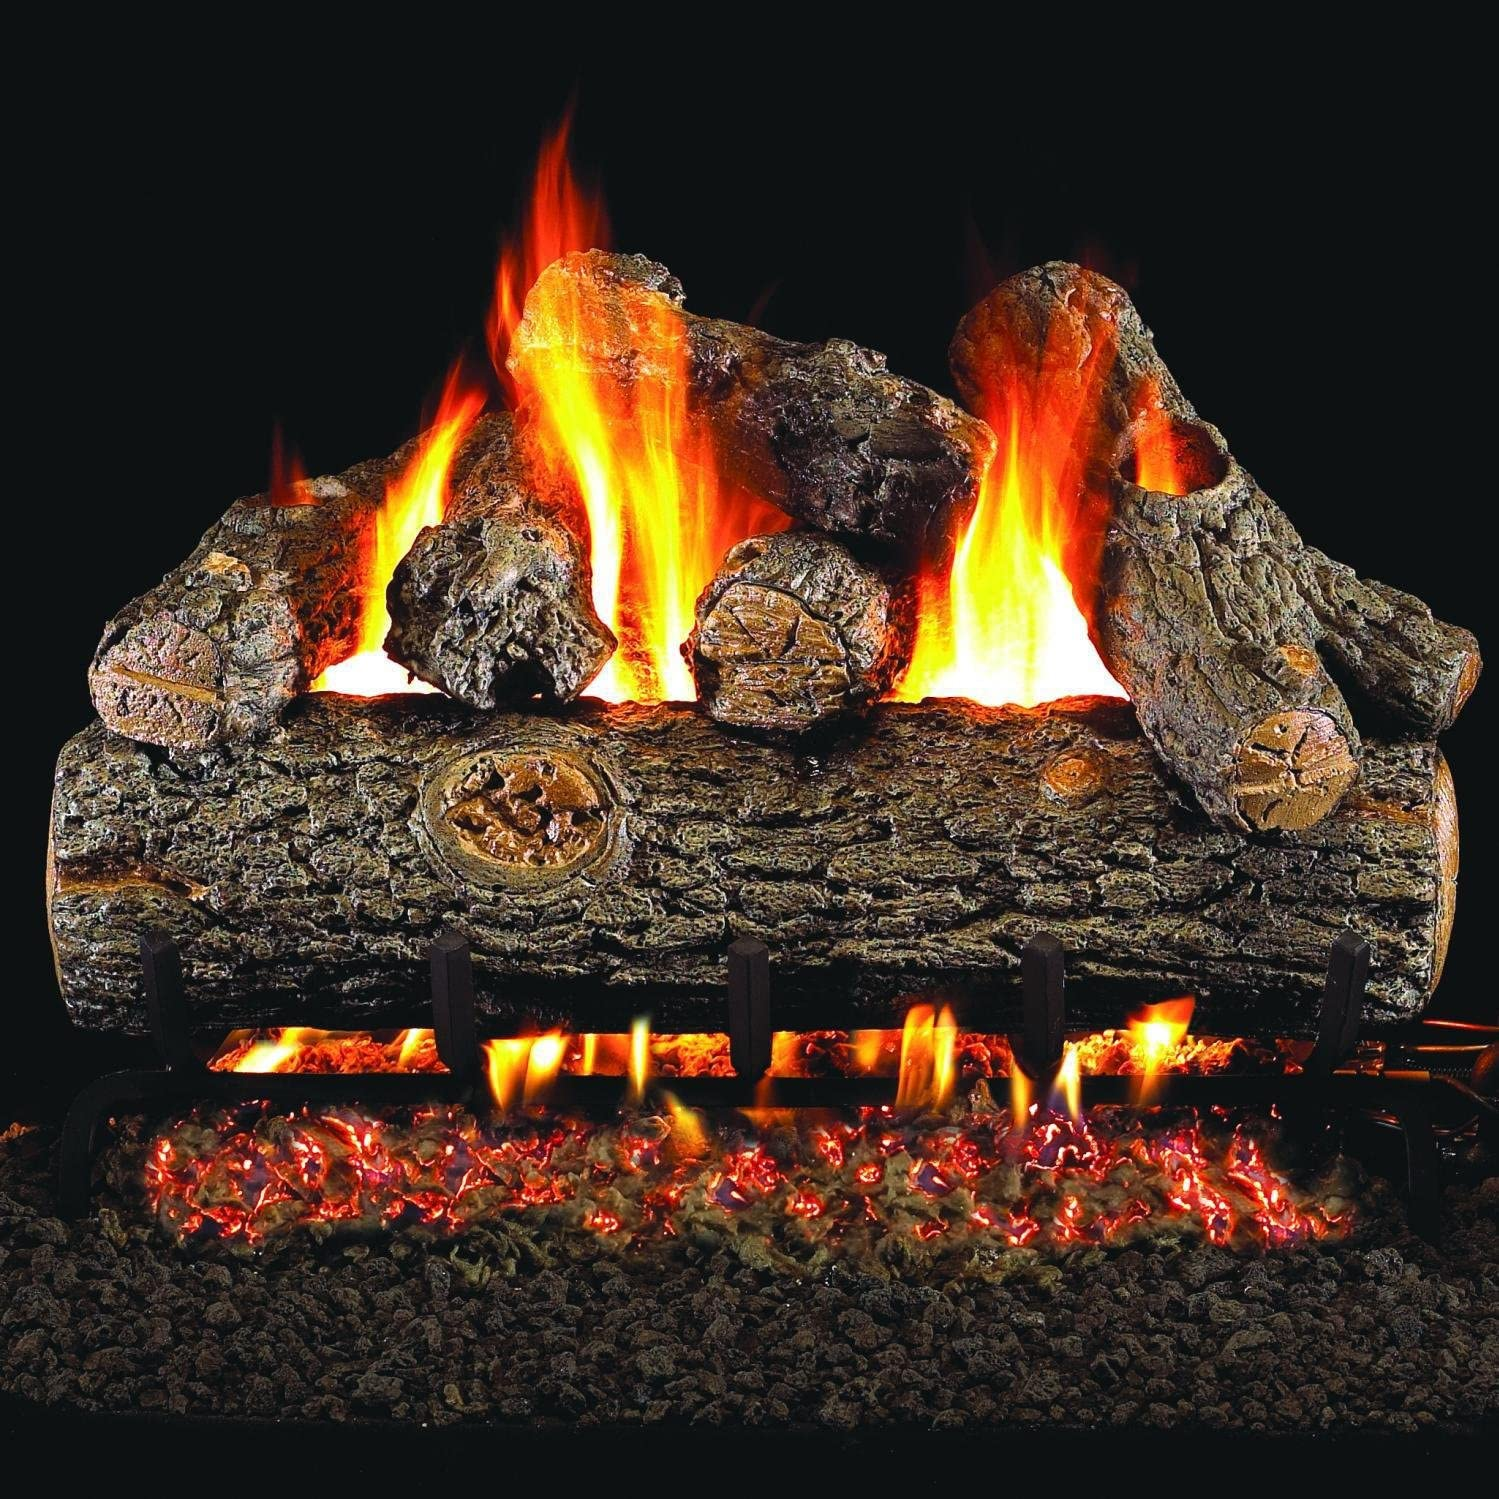 B001OU7TQI Peterson Real Fyre 24-Inch Golden Oak Designer Plus Gas Log Set with Vented Natural Gas G45 Burner - Manual Safety Pilot 81G-e8EkegL.SL1499_